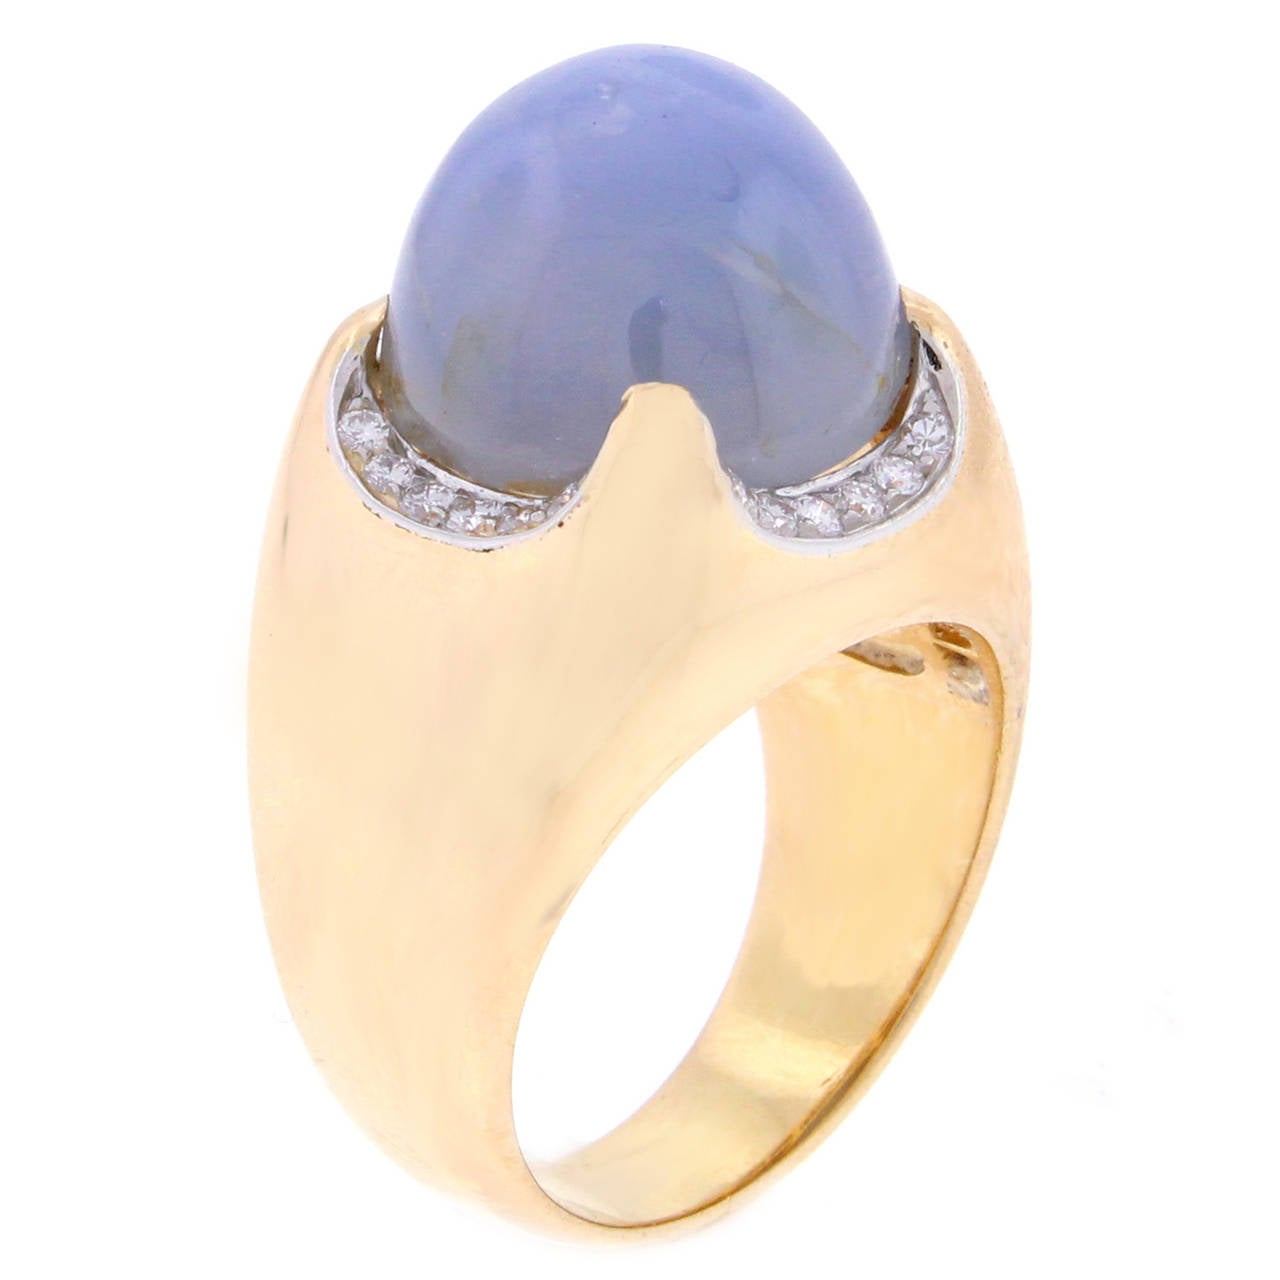 Bulgari 26 carat star sapphire diamond gold dome ring for for 26 carat diamond ring